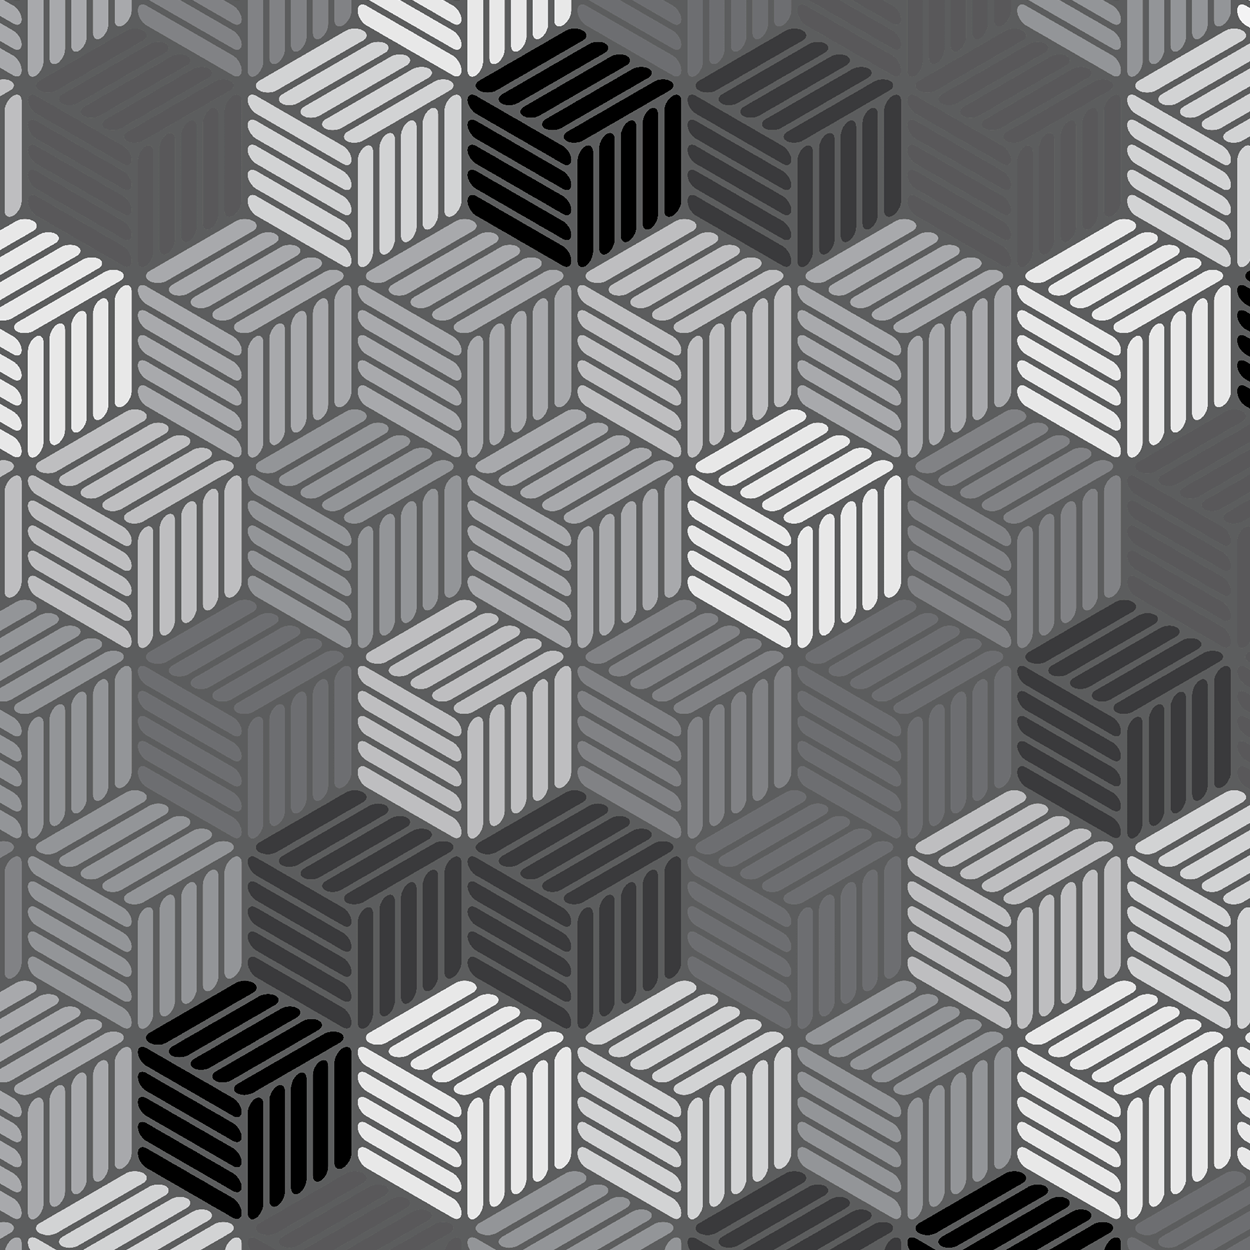 Isometric Hashed Cube 9